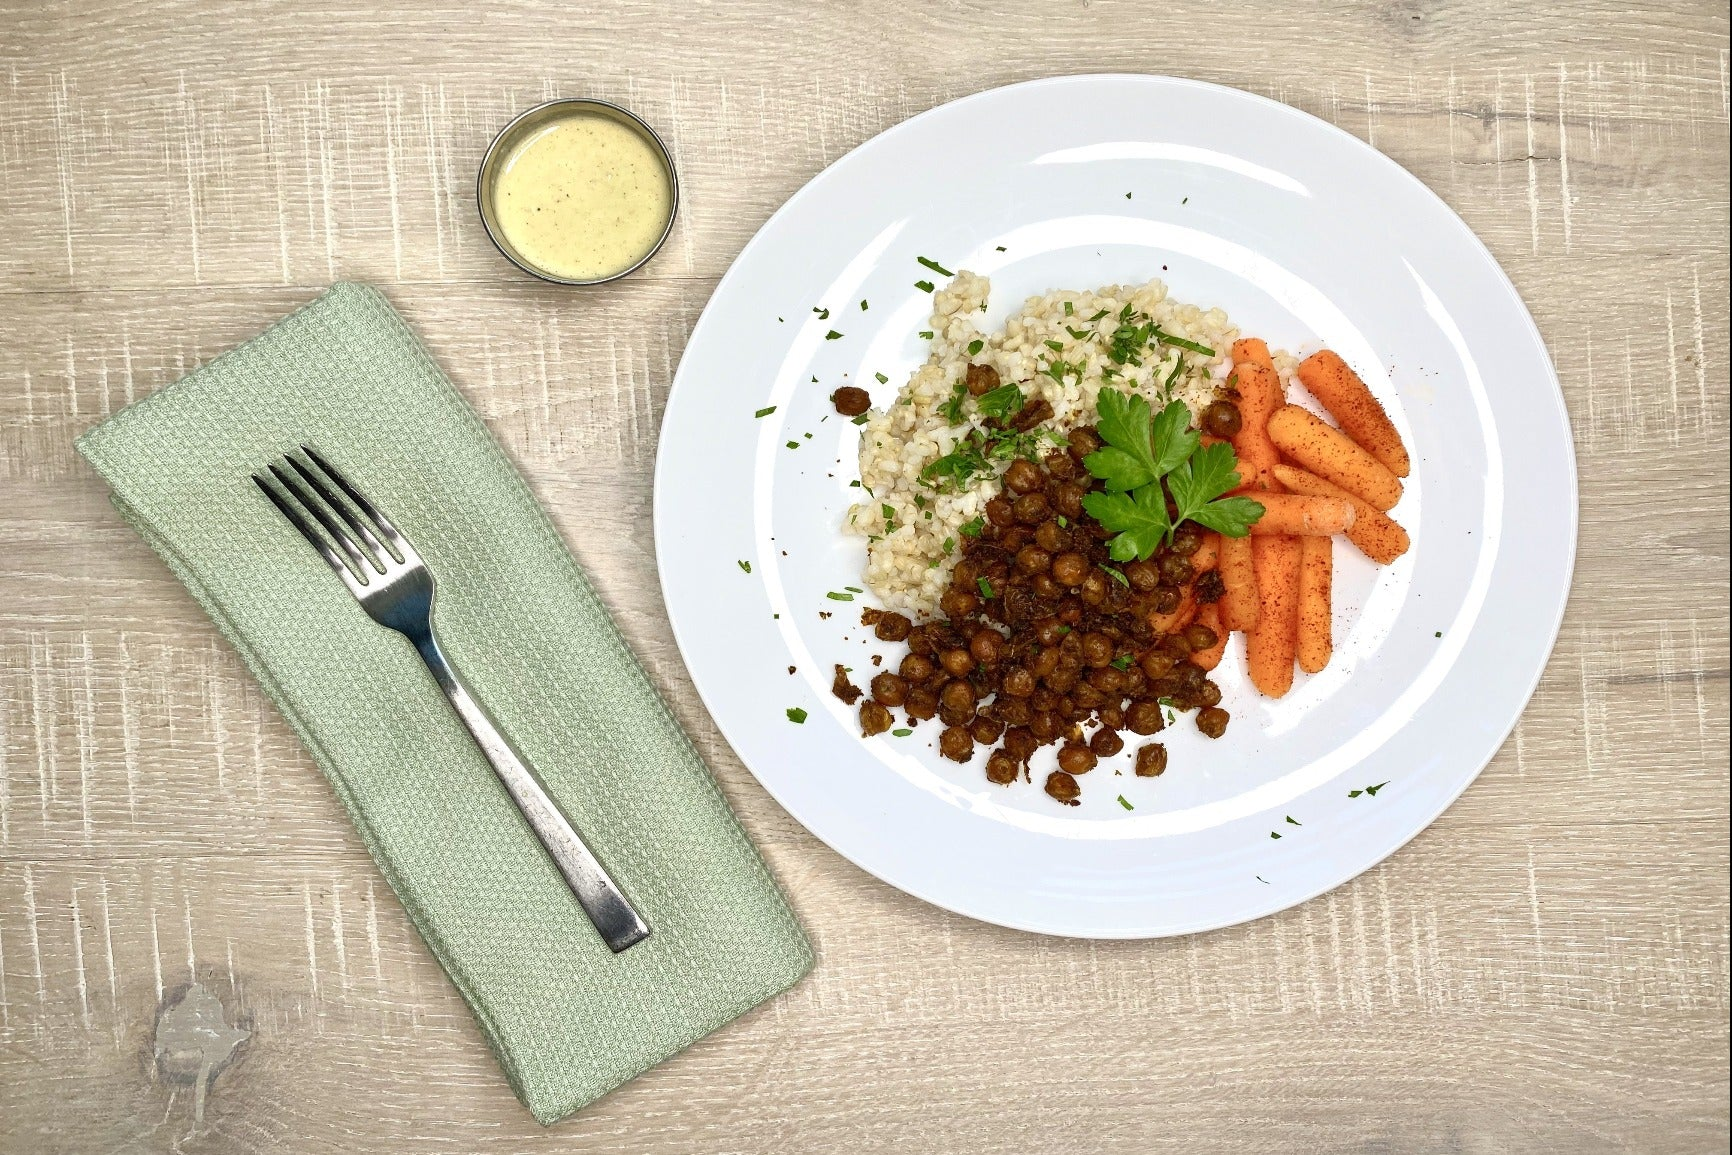 Blackened Crispy Chickpeas w/ Herbed Rice and Roasted Baby Carrots